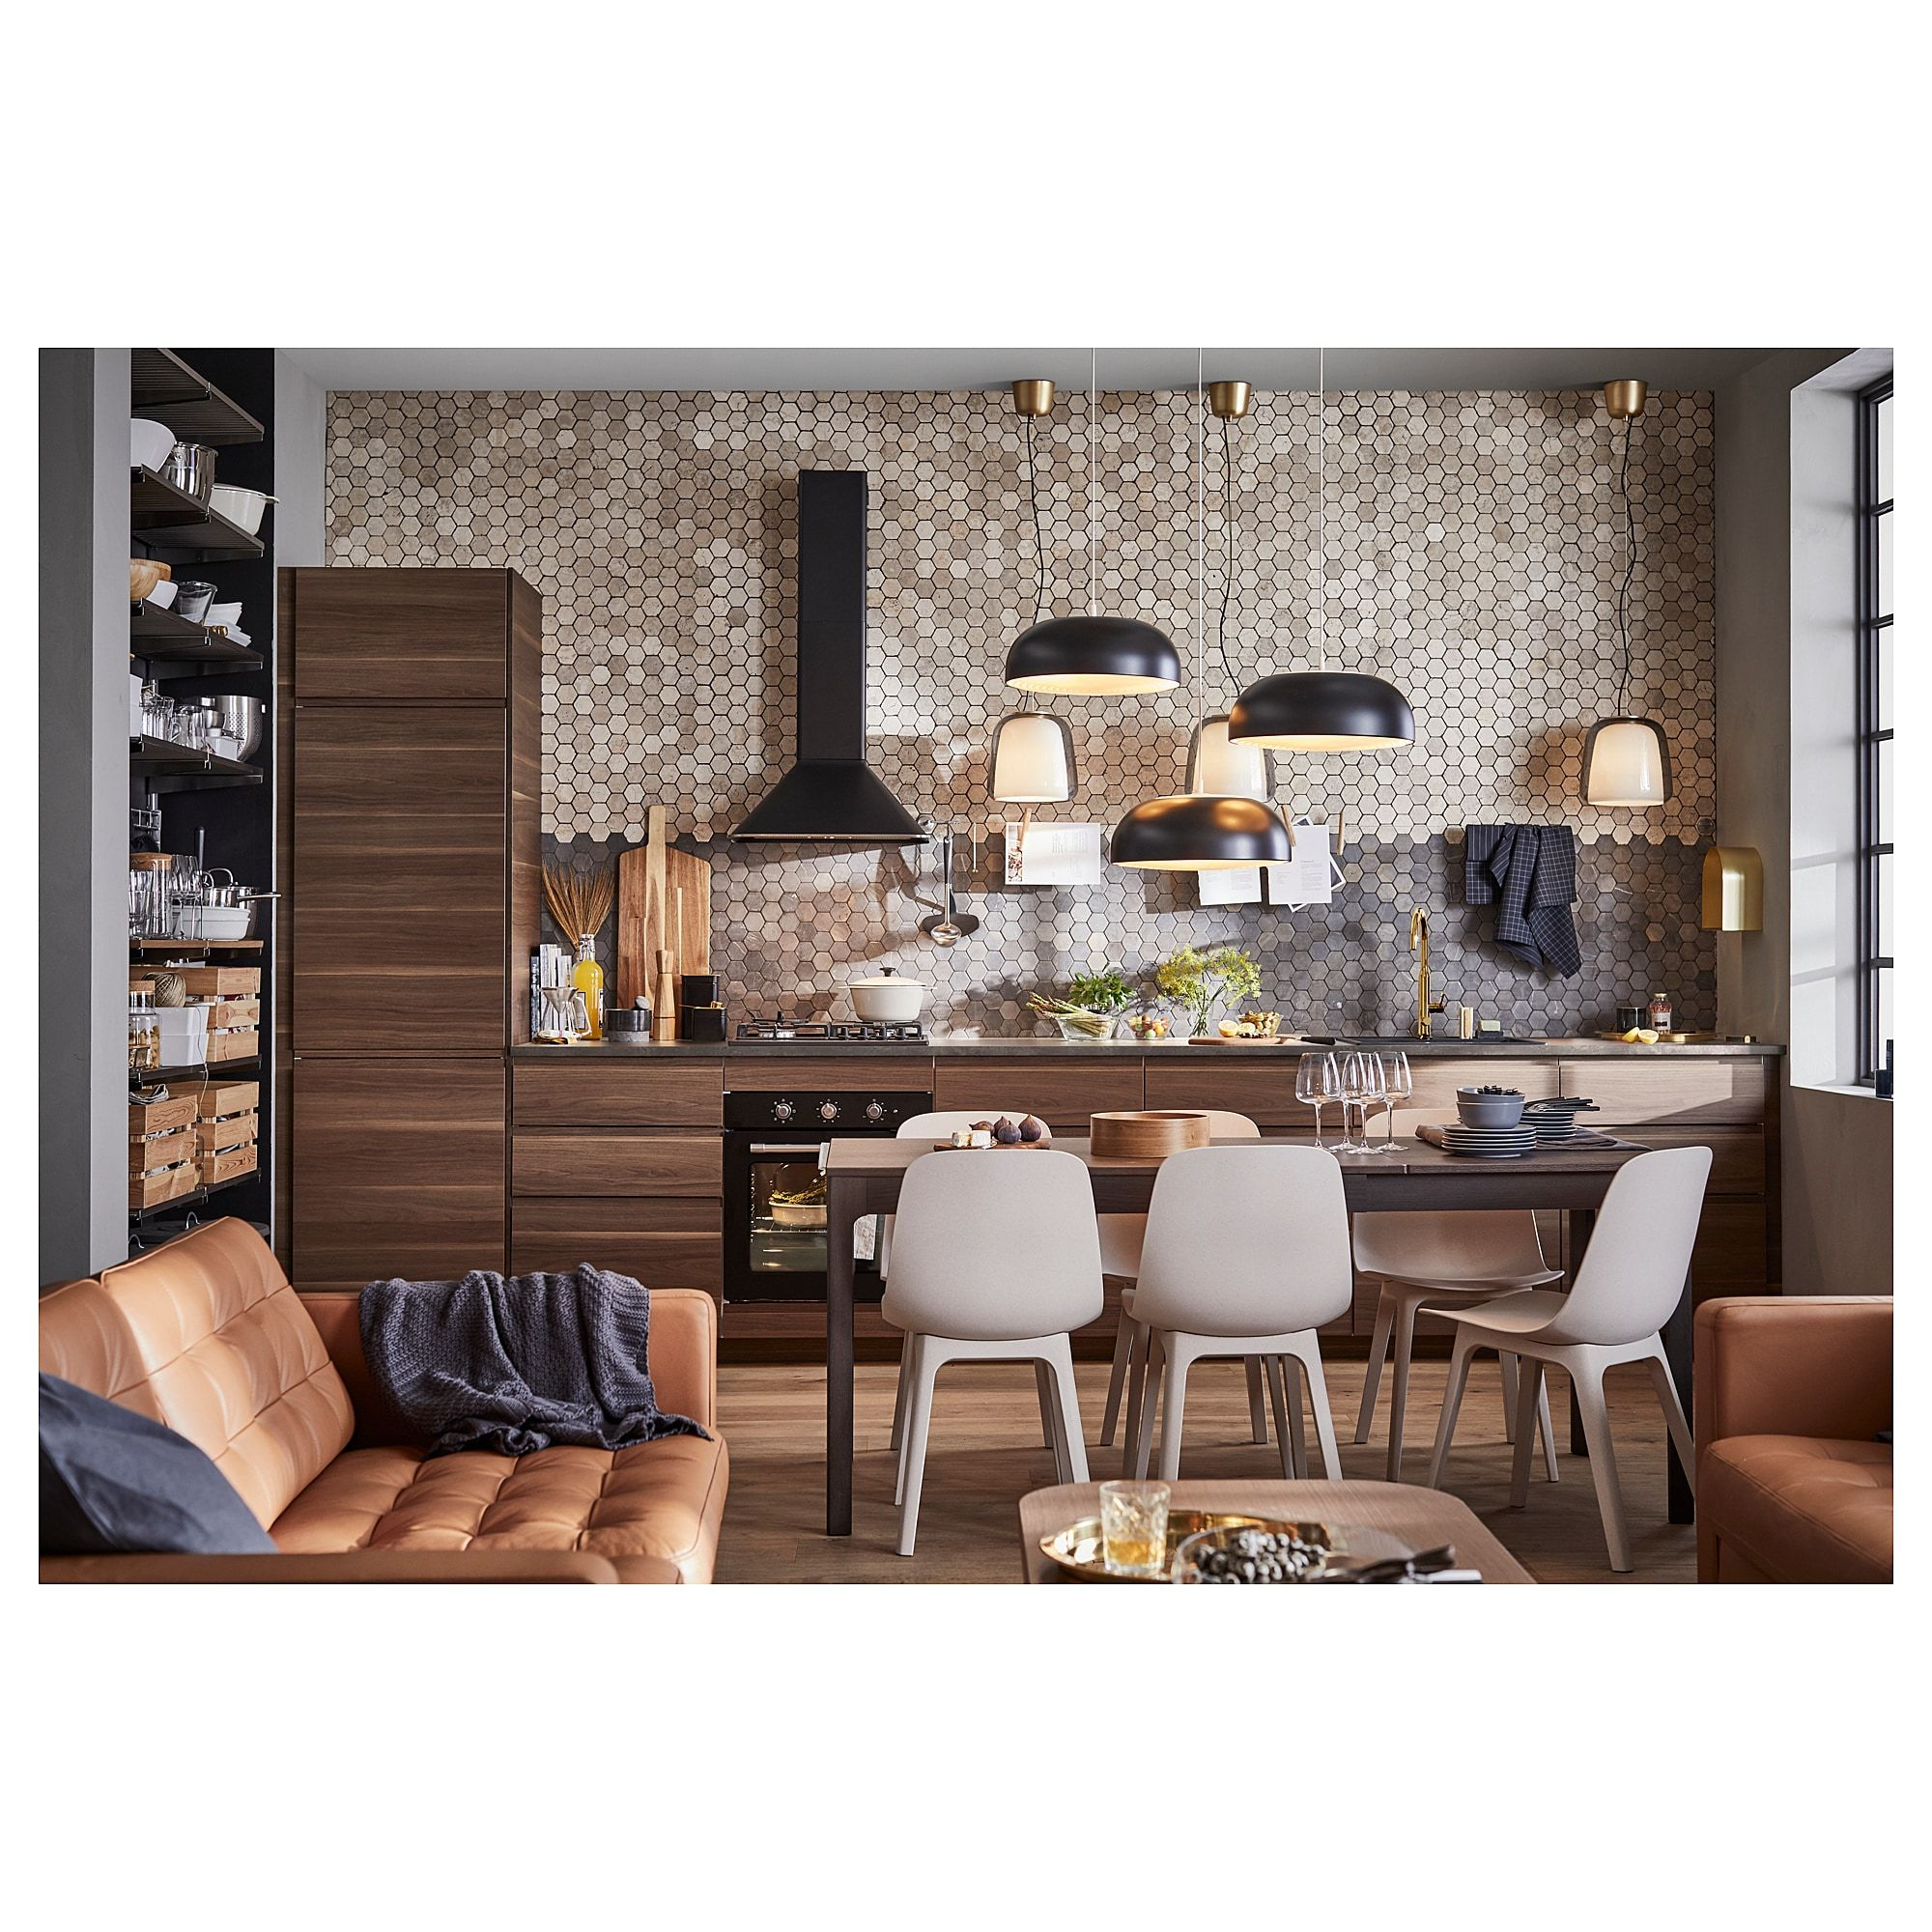 Countertop Dining Room Sets: IKEA - ODGER Chair White, Beige In 2019